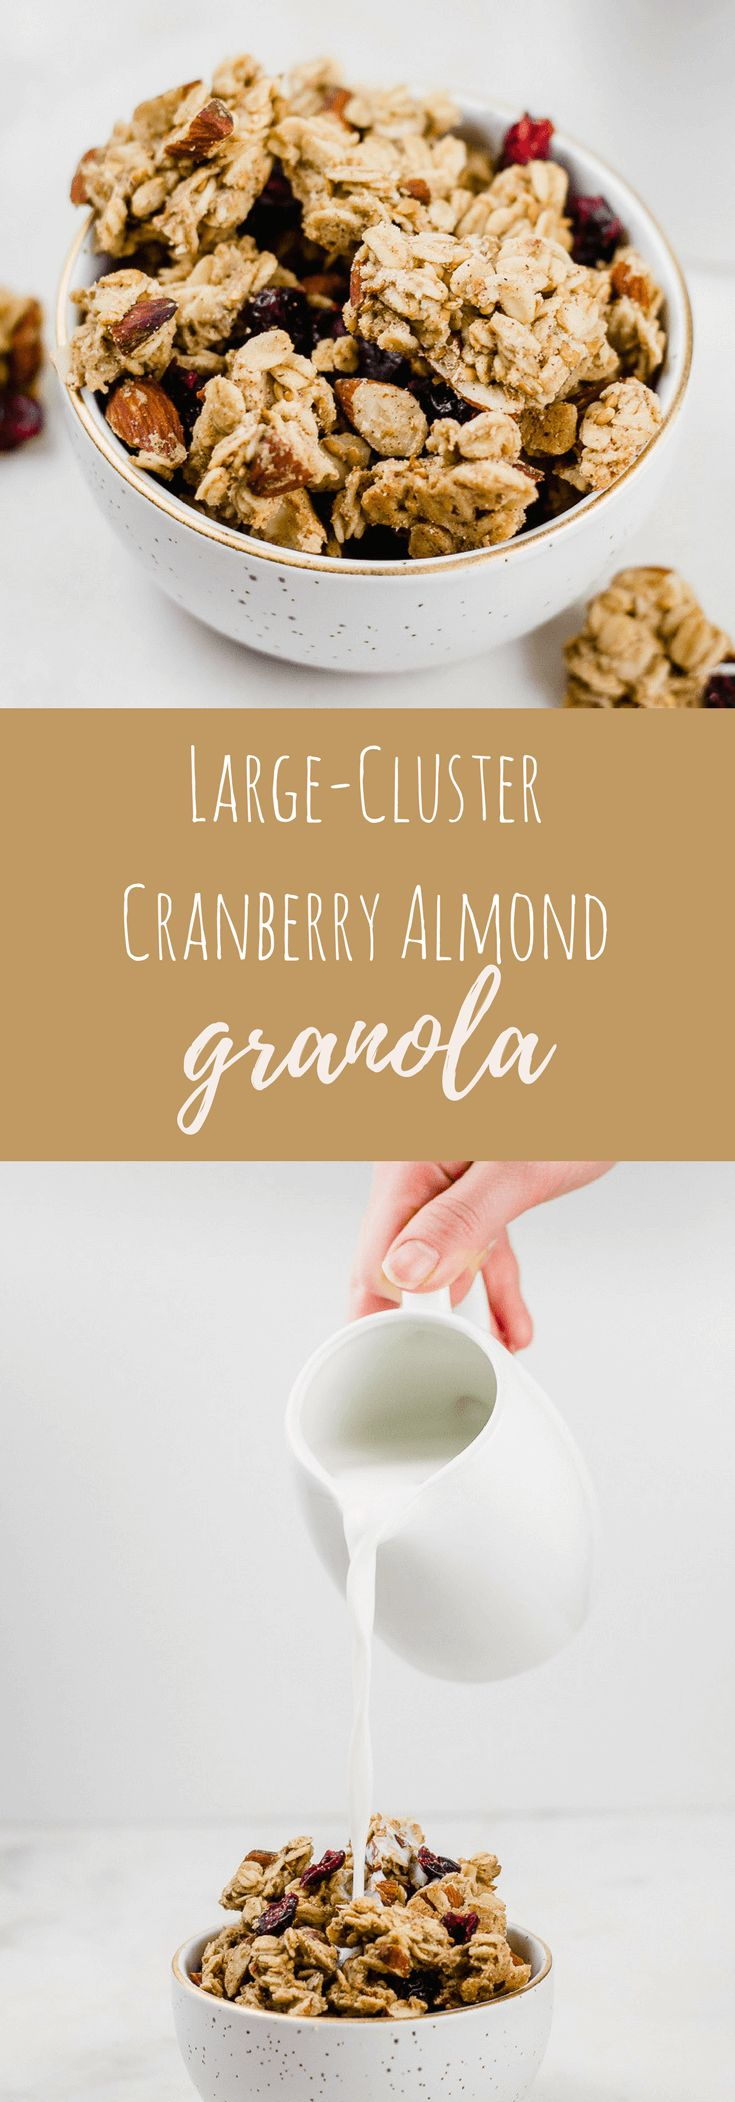 This easy cranberry almond granola recipe will convince you that homemade granola is the way to go! Plus, find out the best tricks to get chunky granola with large clusters.